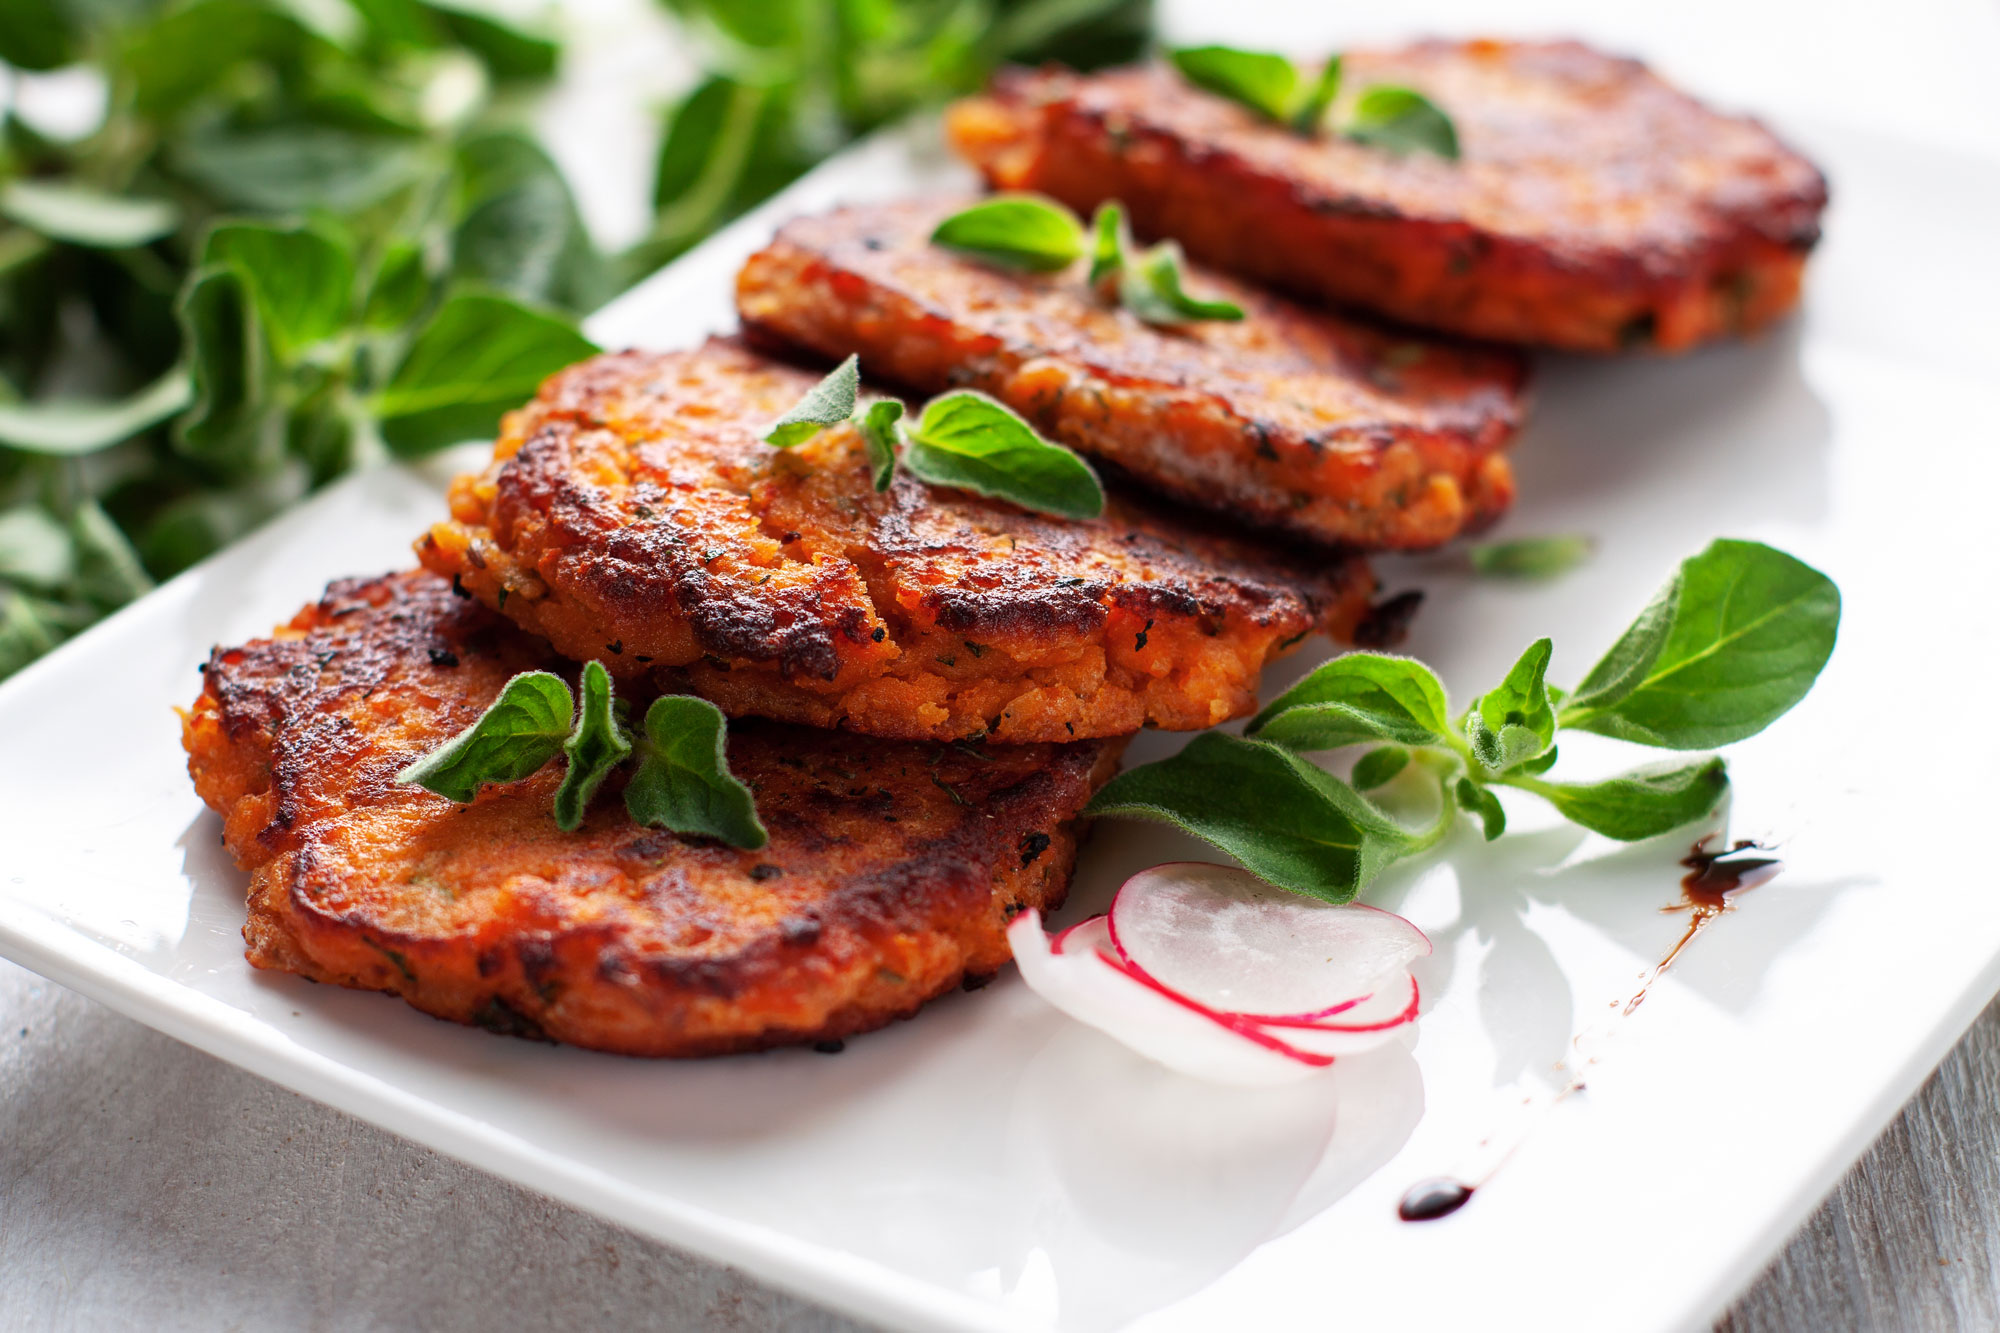 Four palm-sized Salmon Sweet Potato patties resting on a plate garnished with herbs